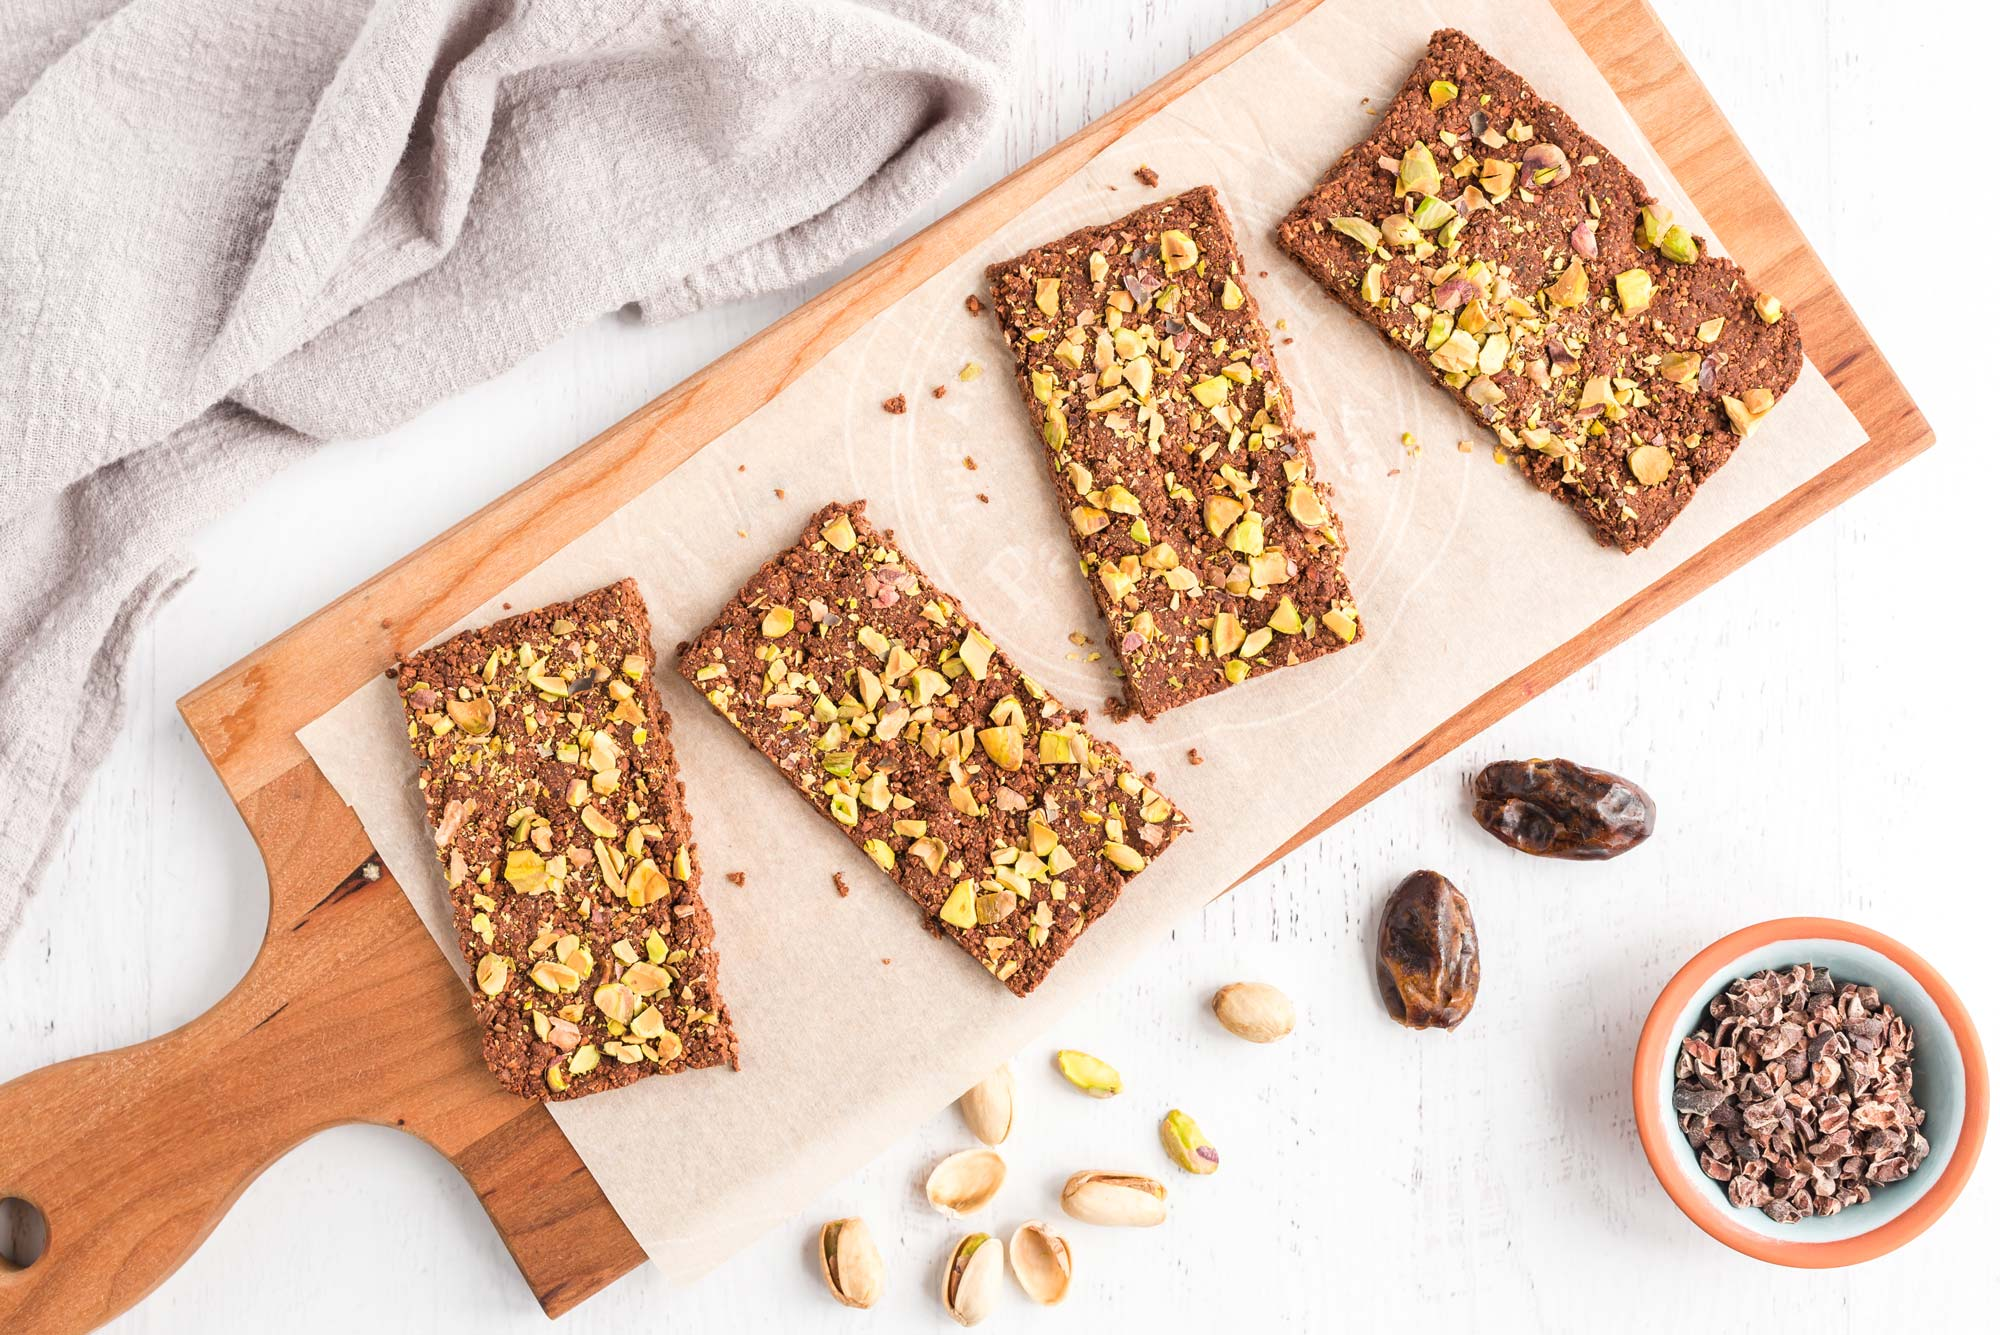 Raw dark chocolate bars with pistachios